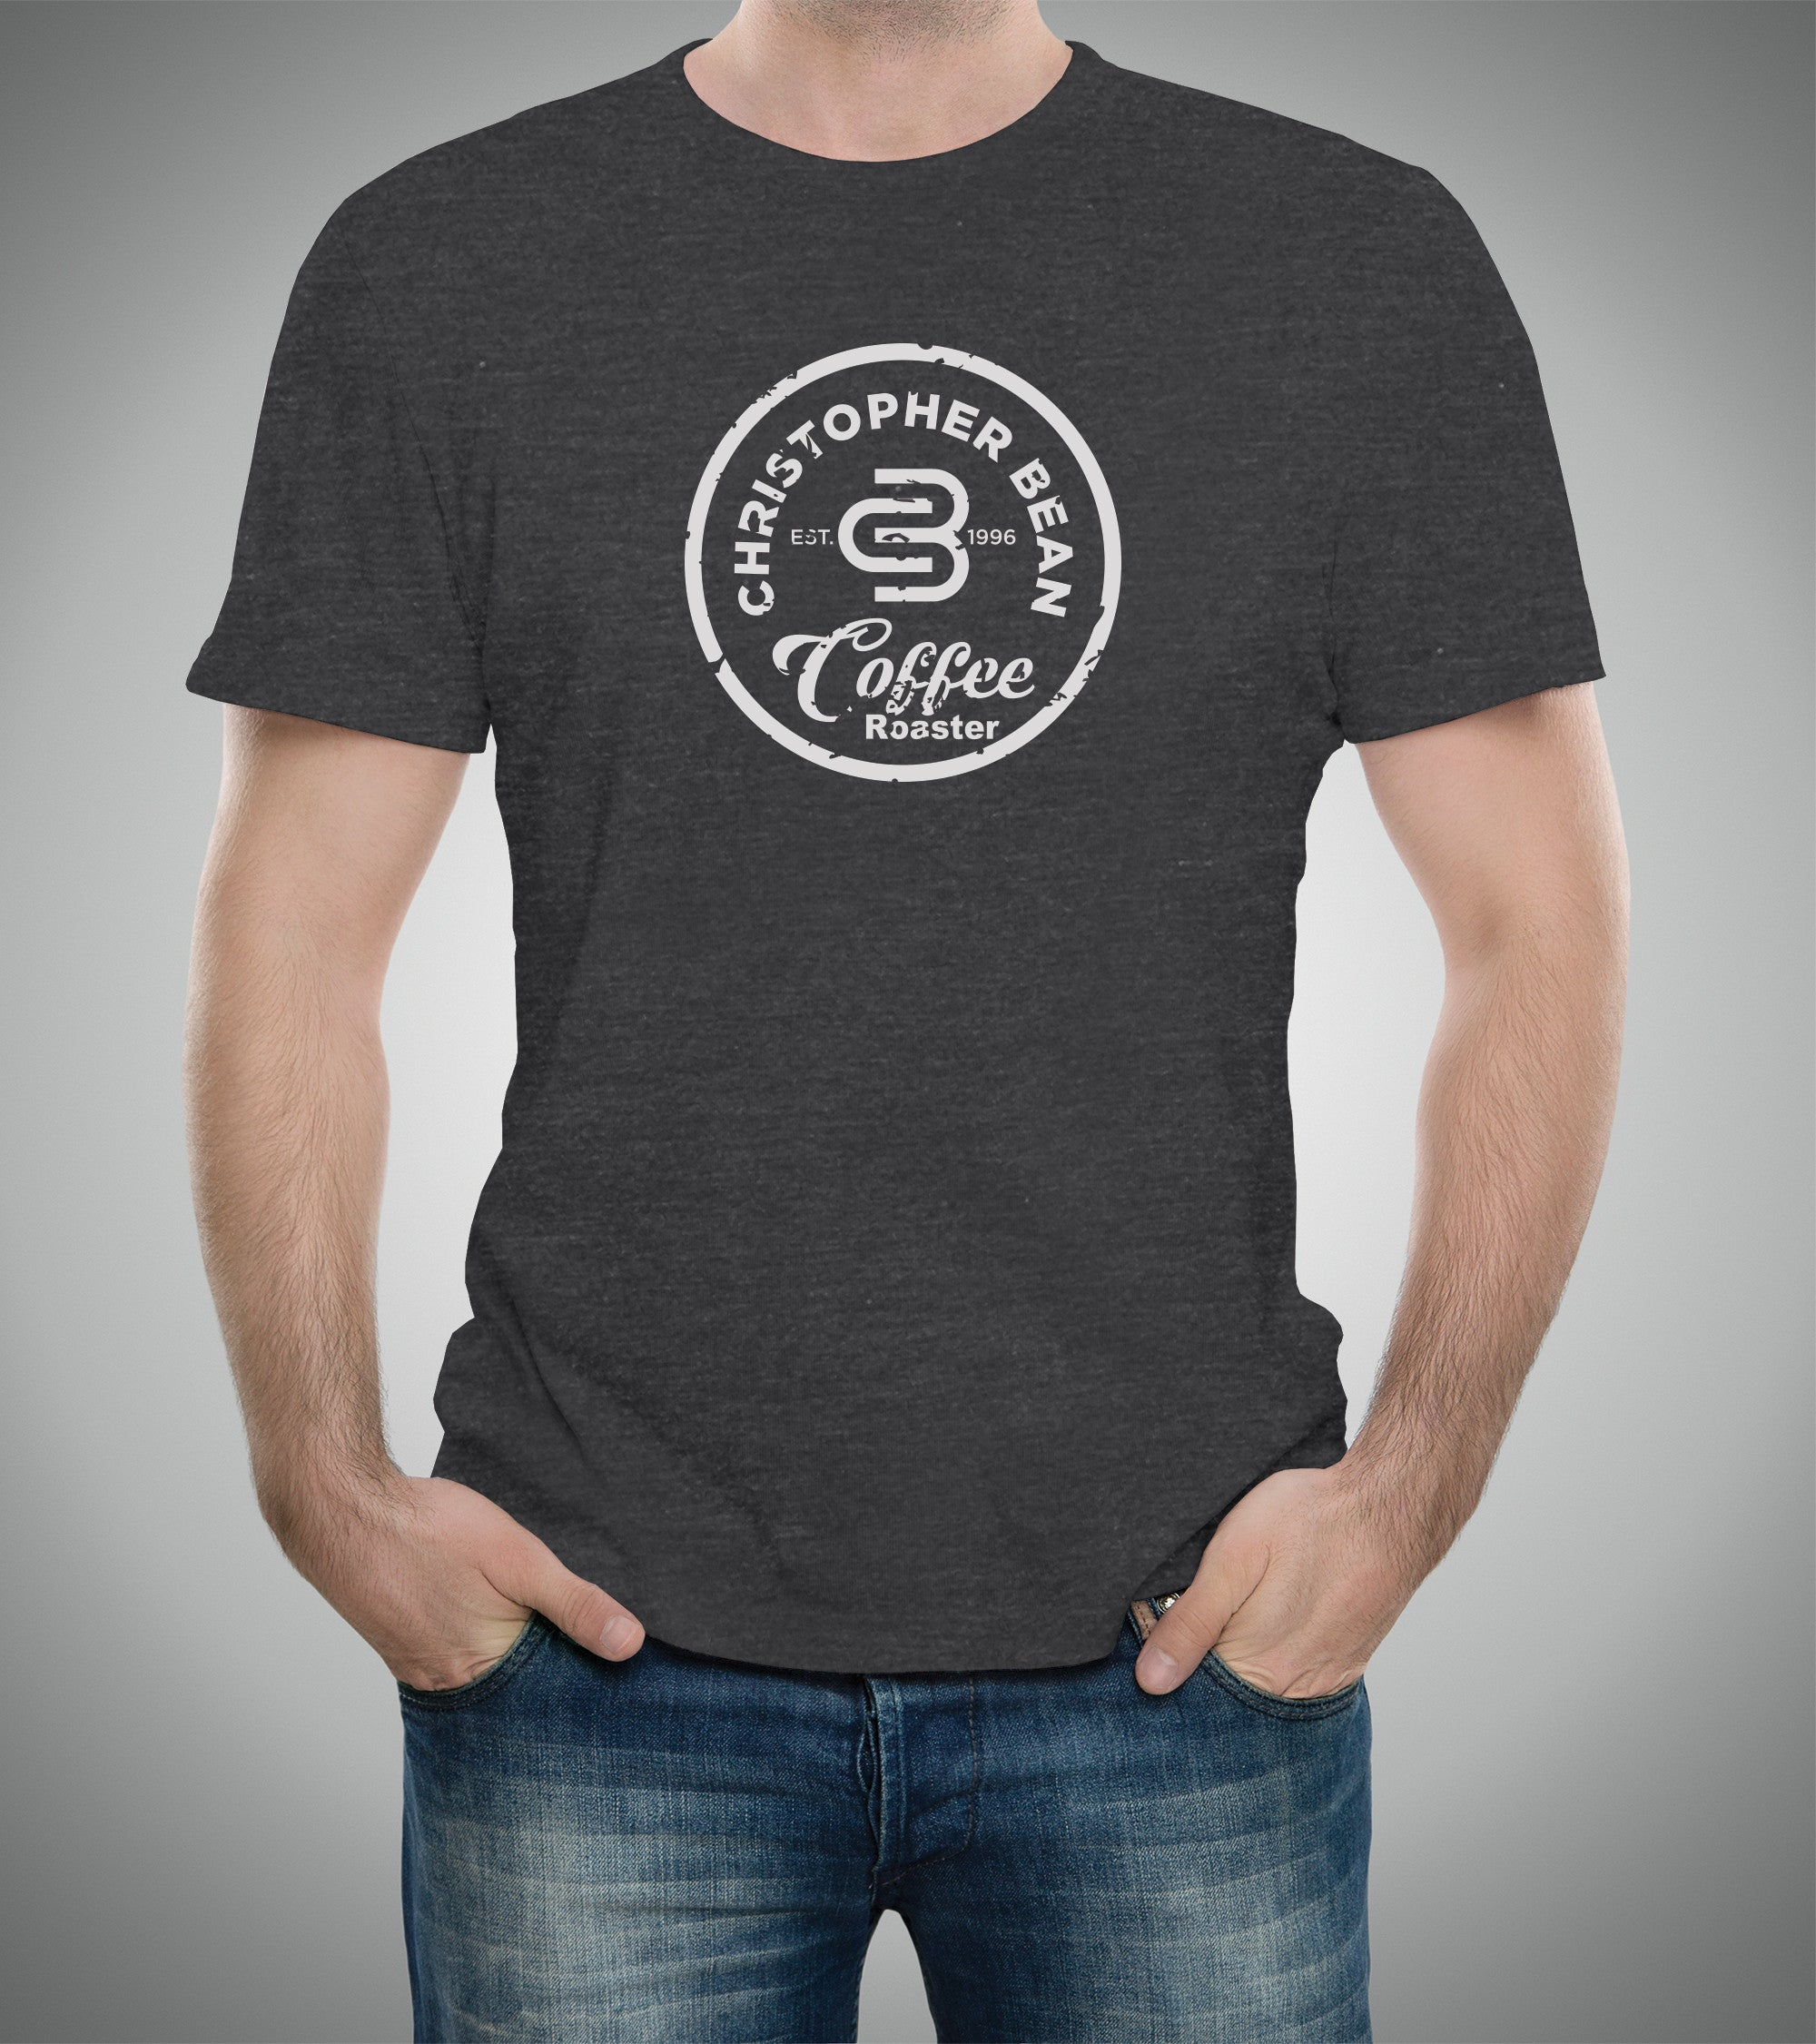 Mens Since 1996 Coffee Roaster White Logo T Shirt